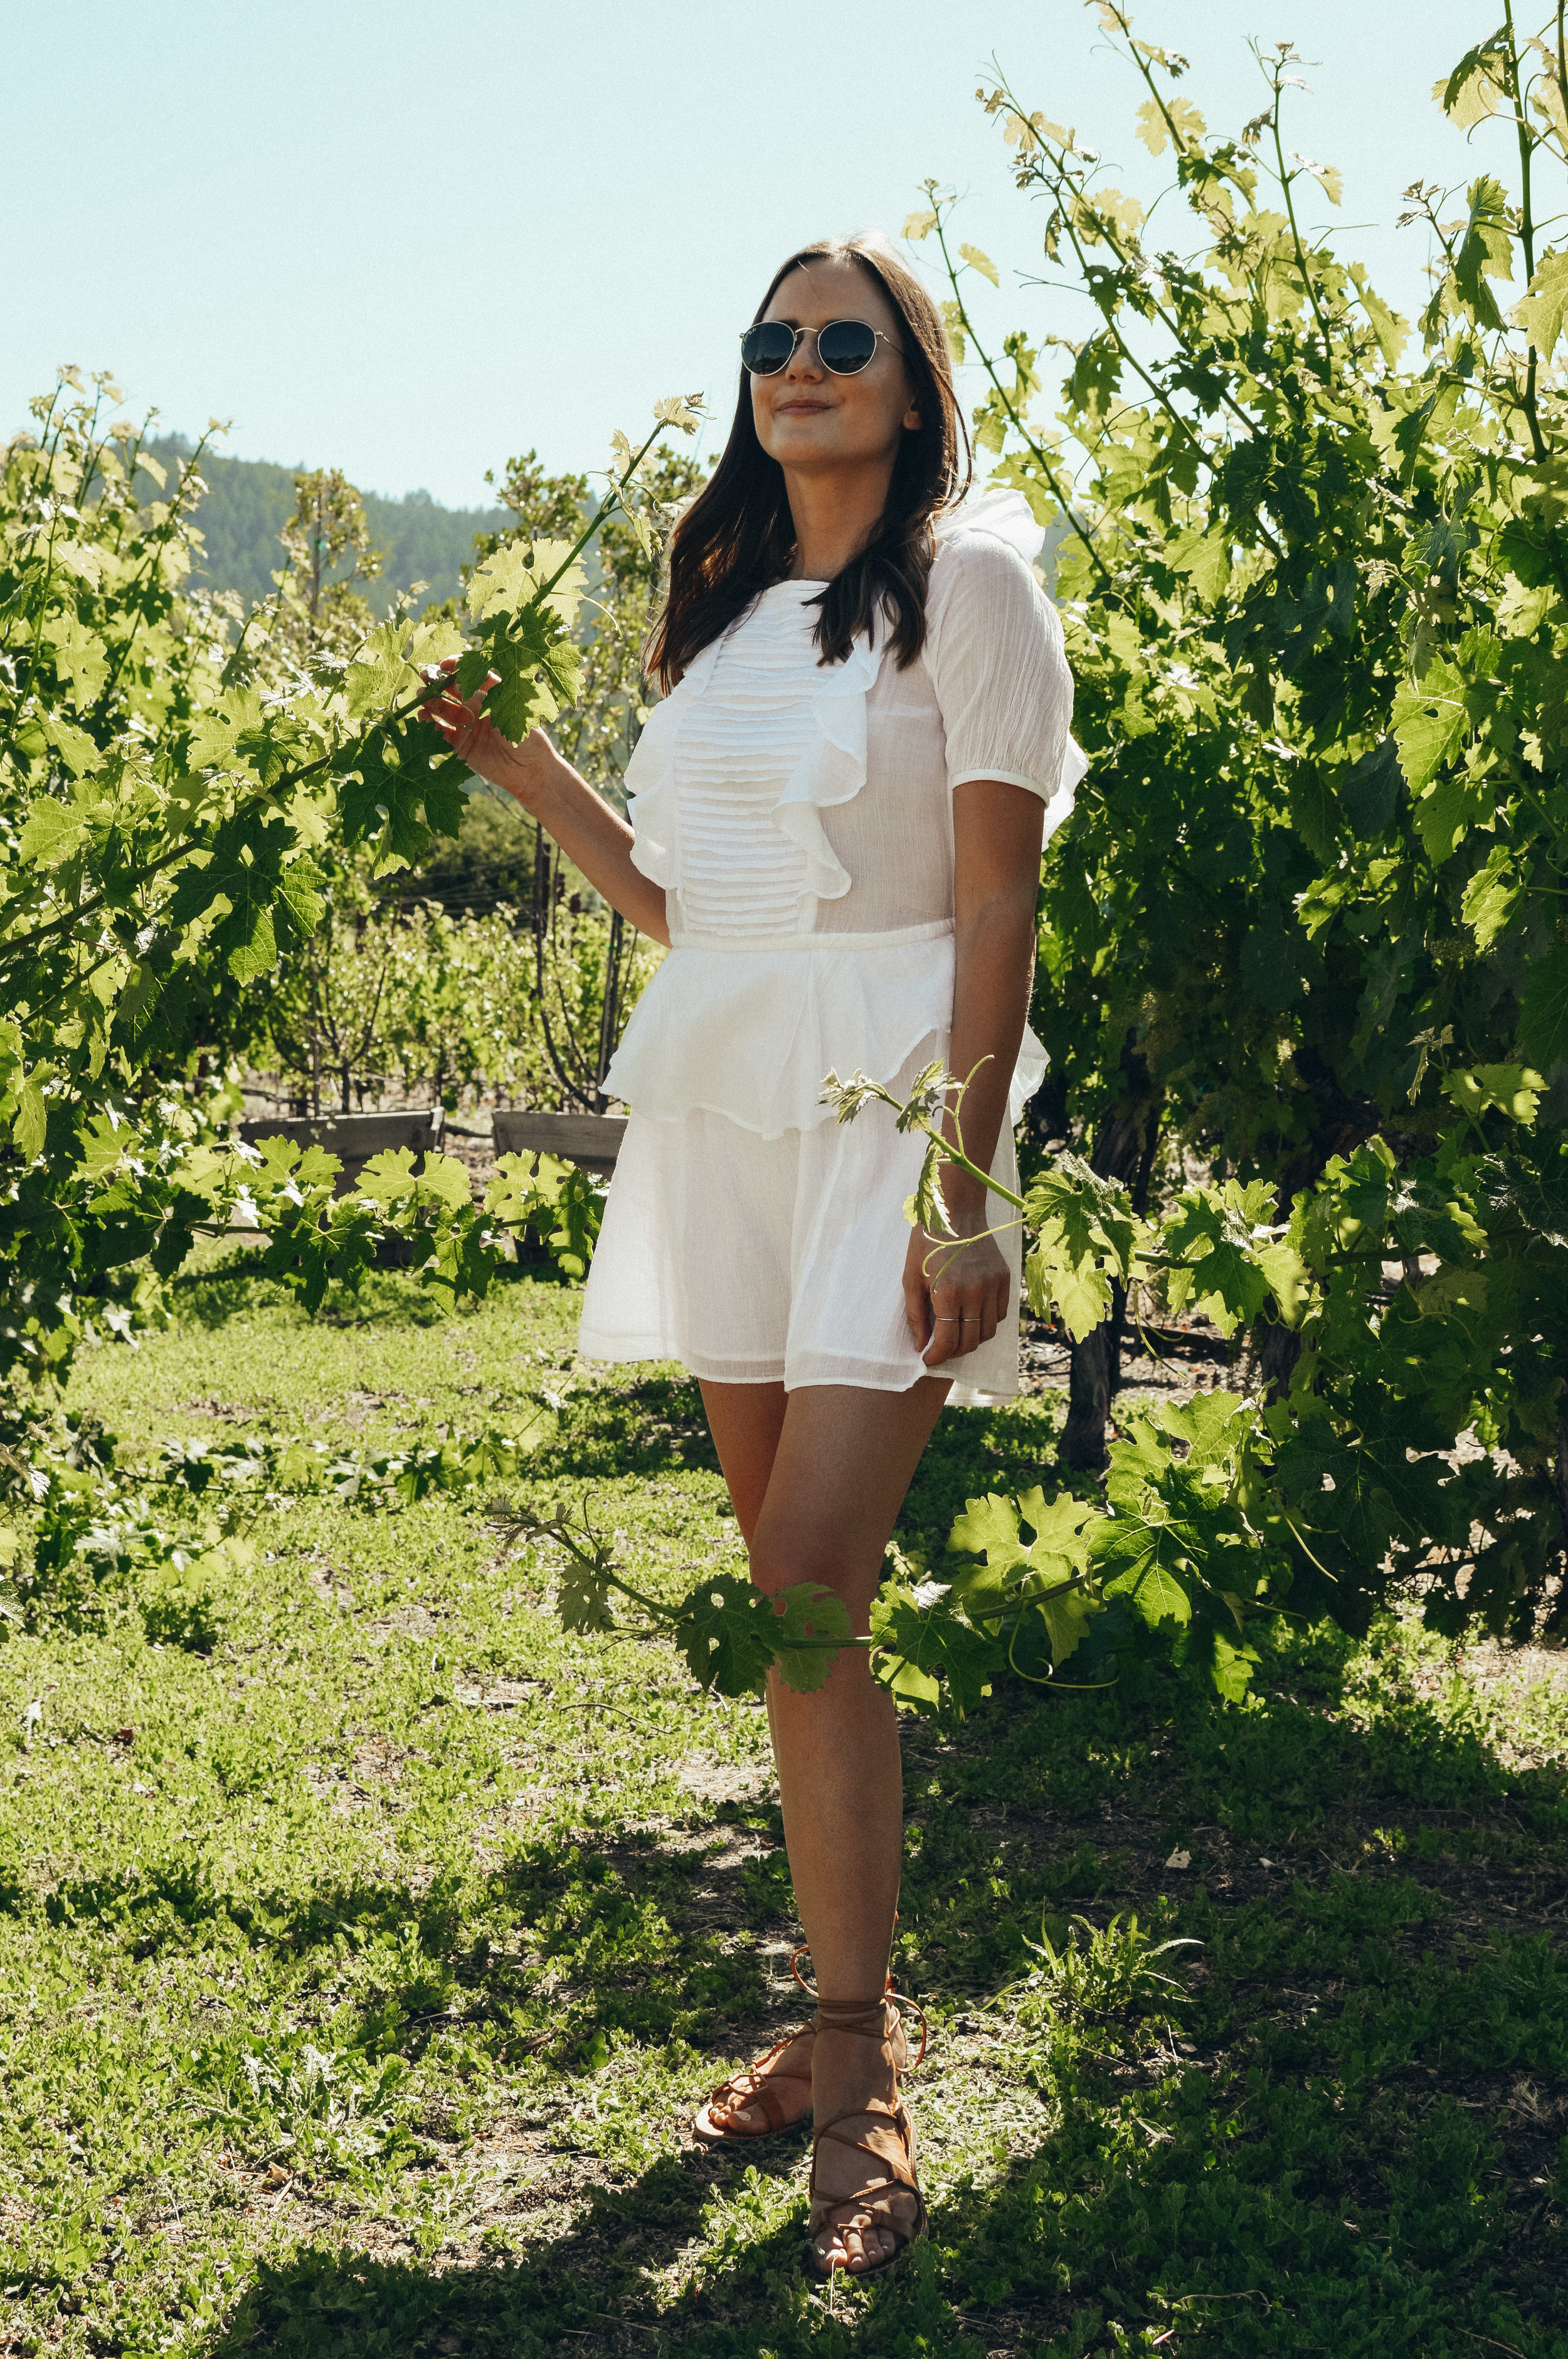 napa outfit wine tasting